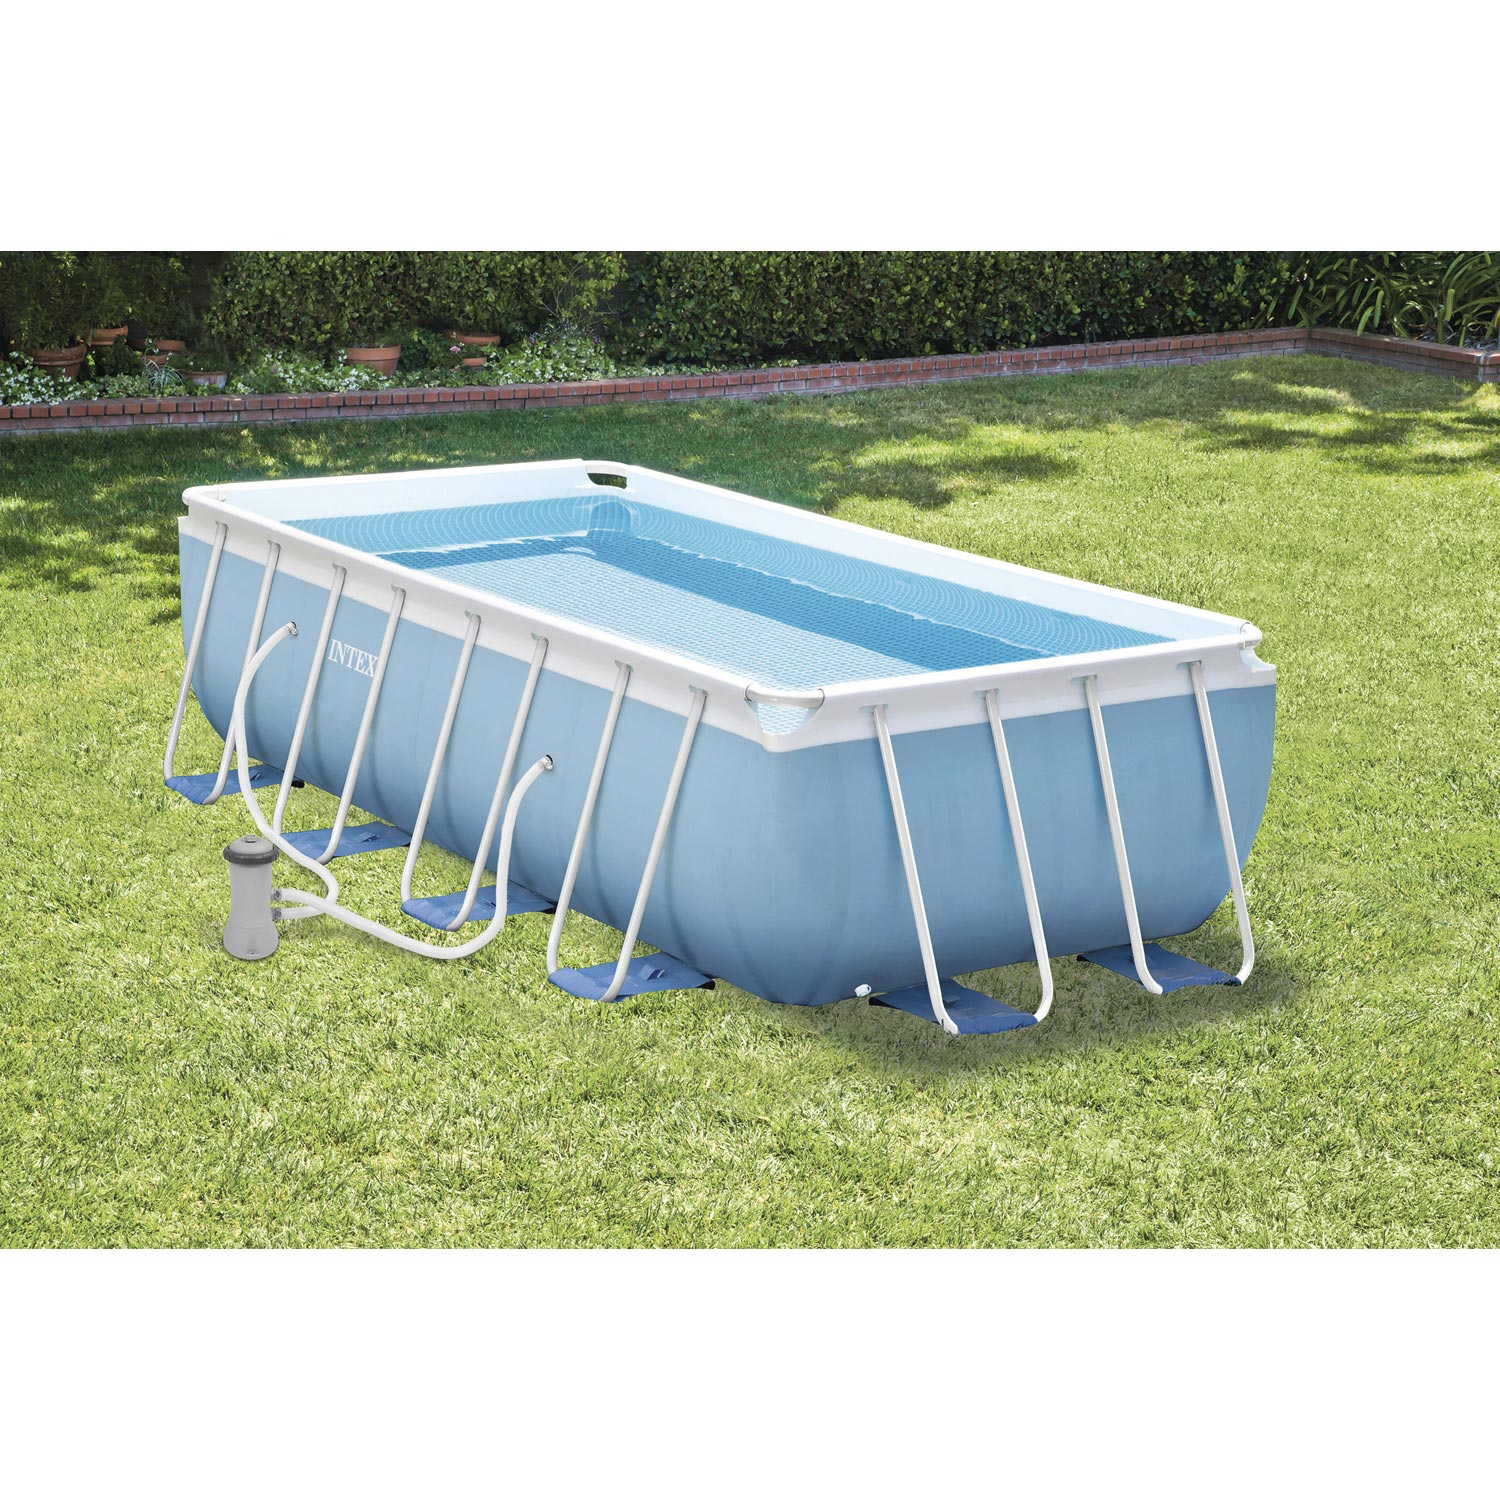 Piscine hors sol autoportante tubulaire prism frame intex for Intex piscine